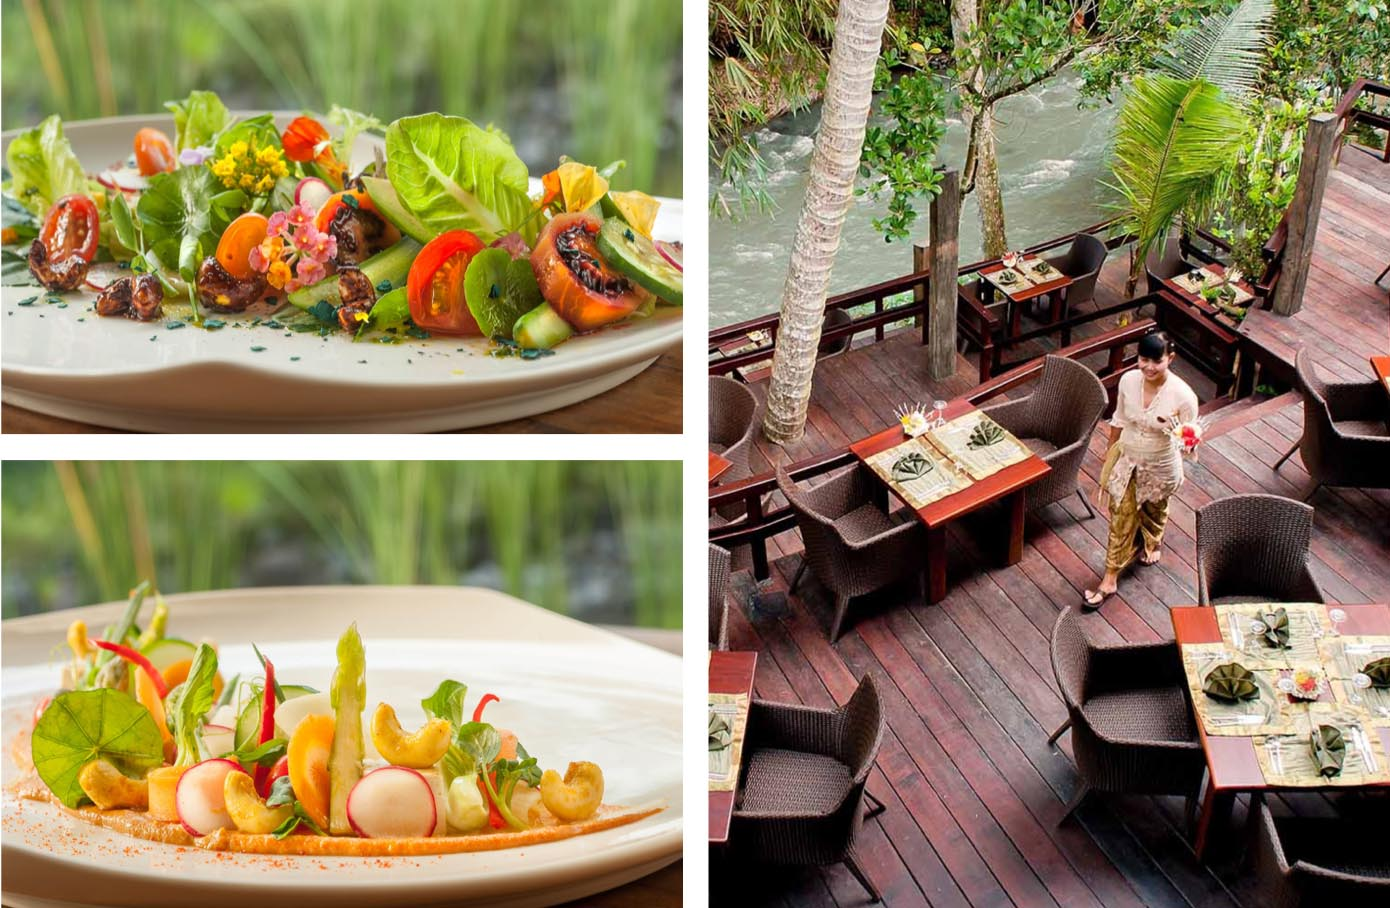 7 must visit healthy cafes and restaurants in Bali